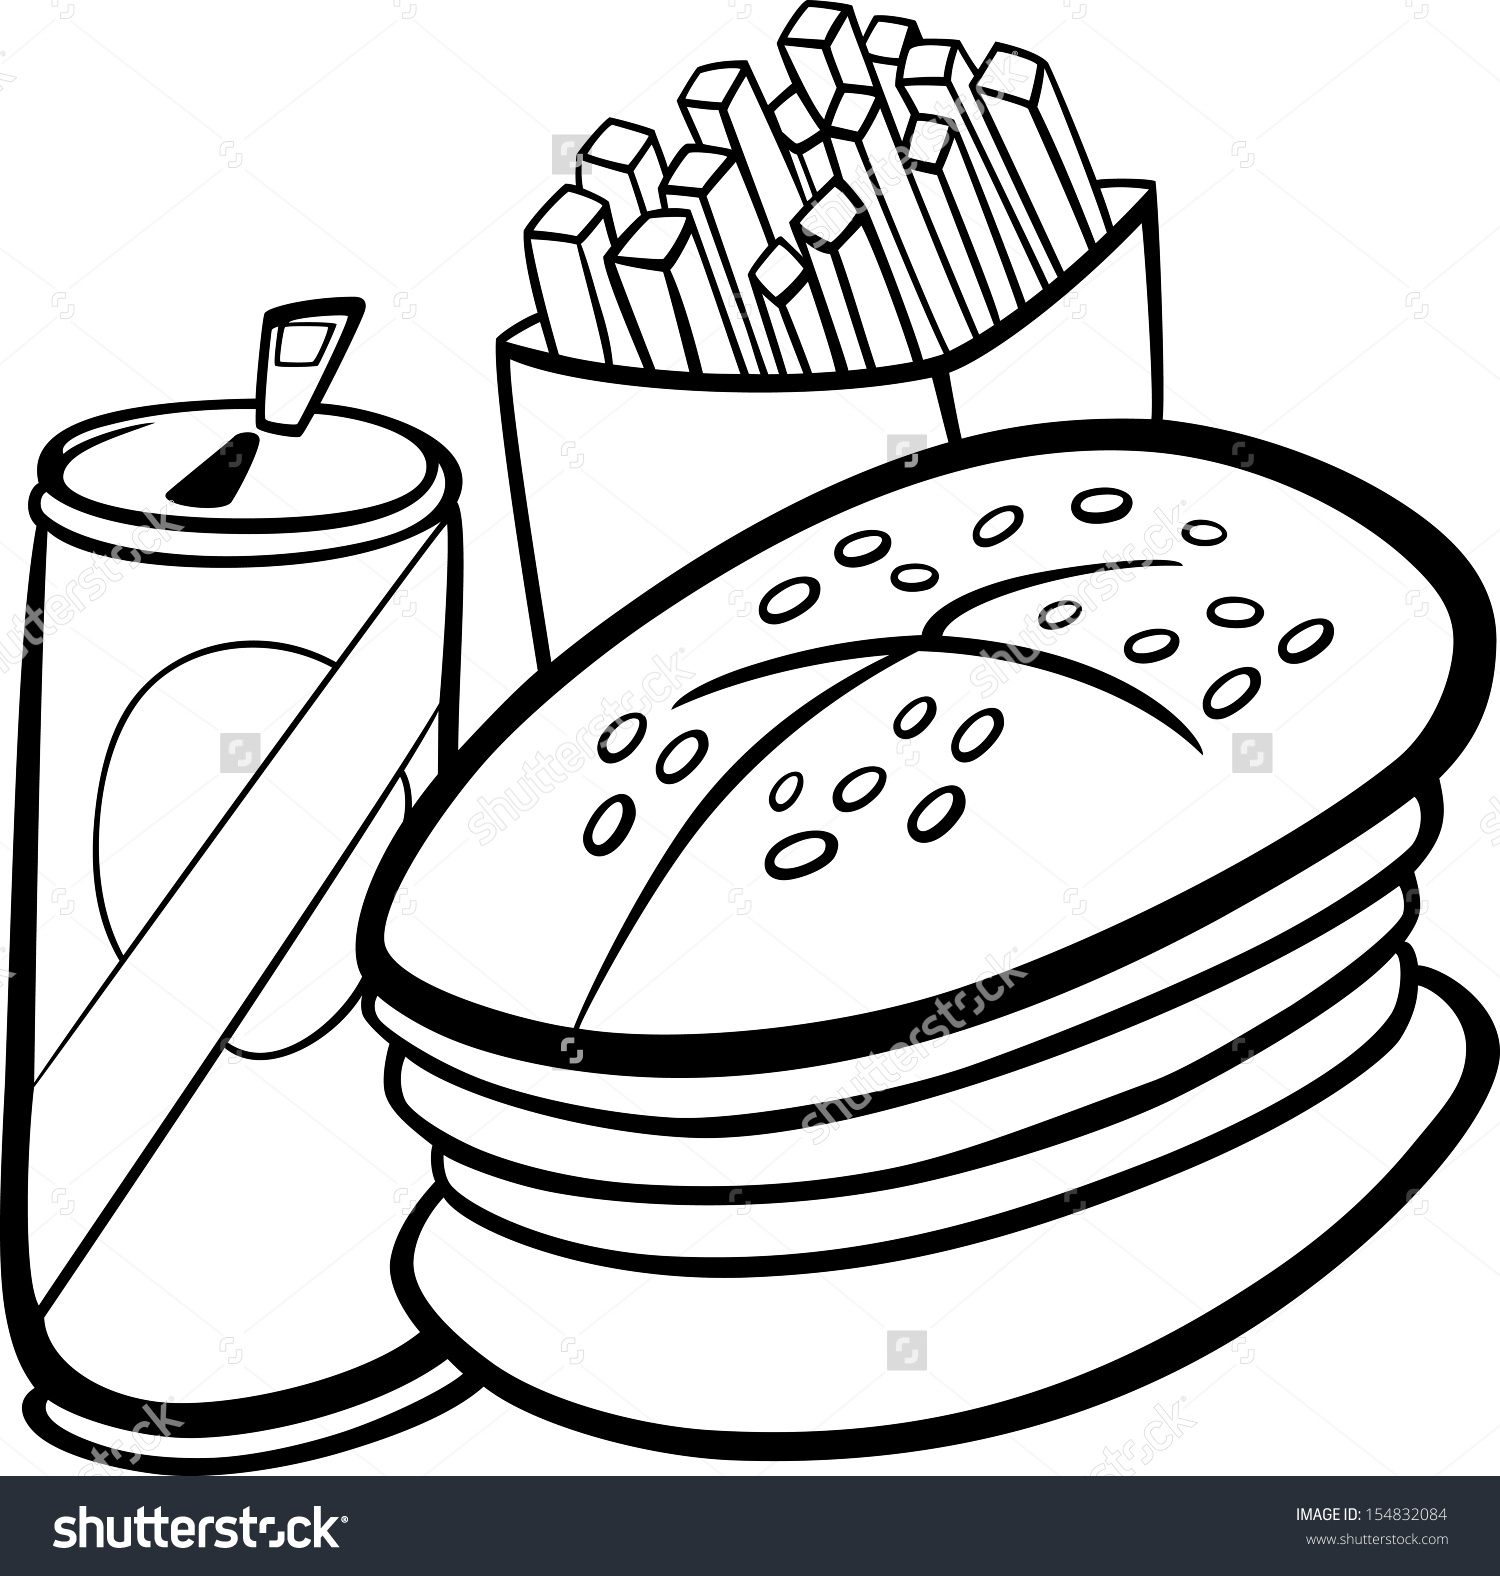 Meal clipart black and white.